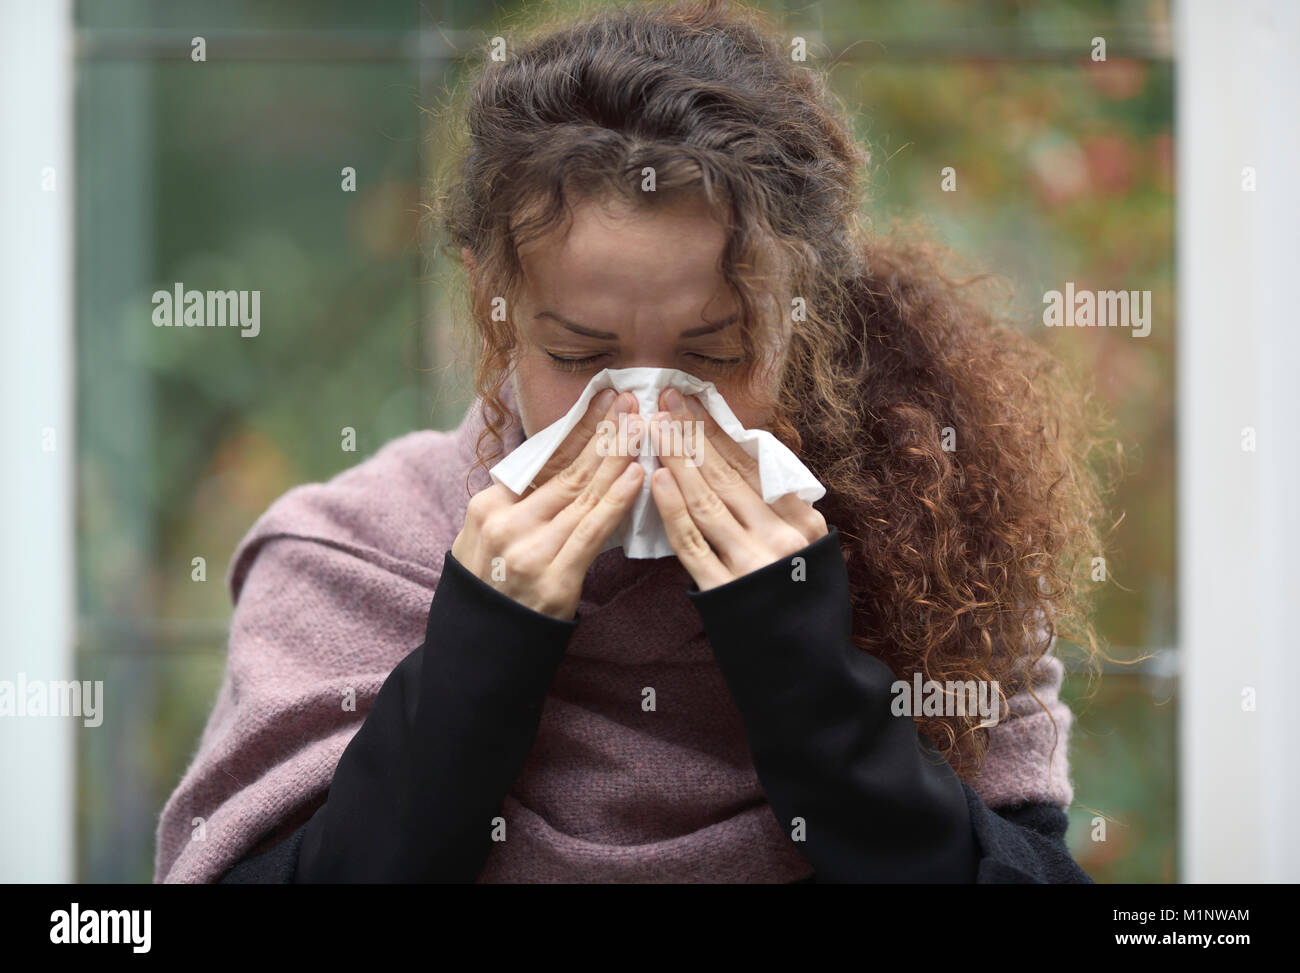 Outdoor portrait of a woman blowing her nose in paper tissue - Stock Image